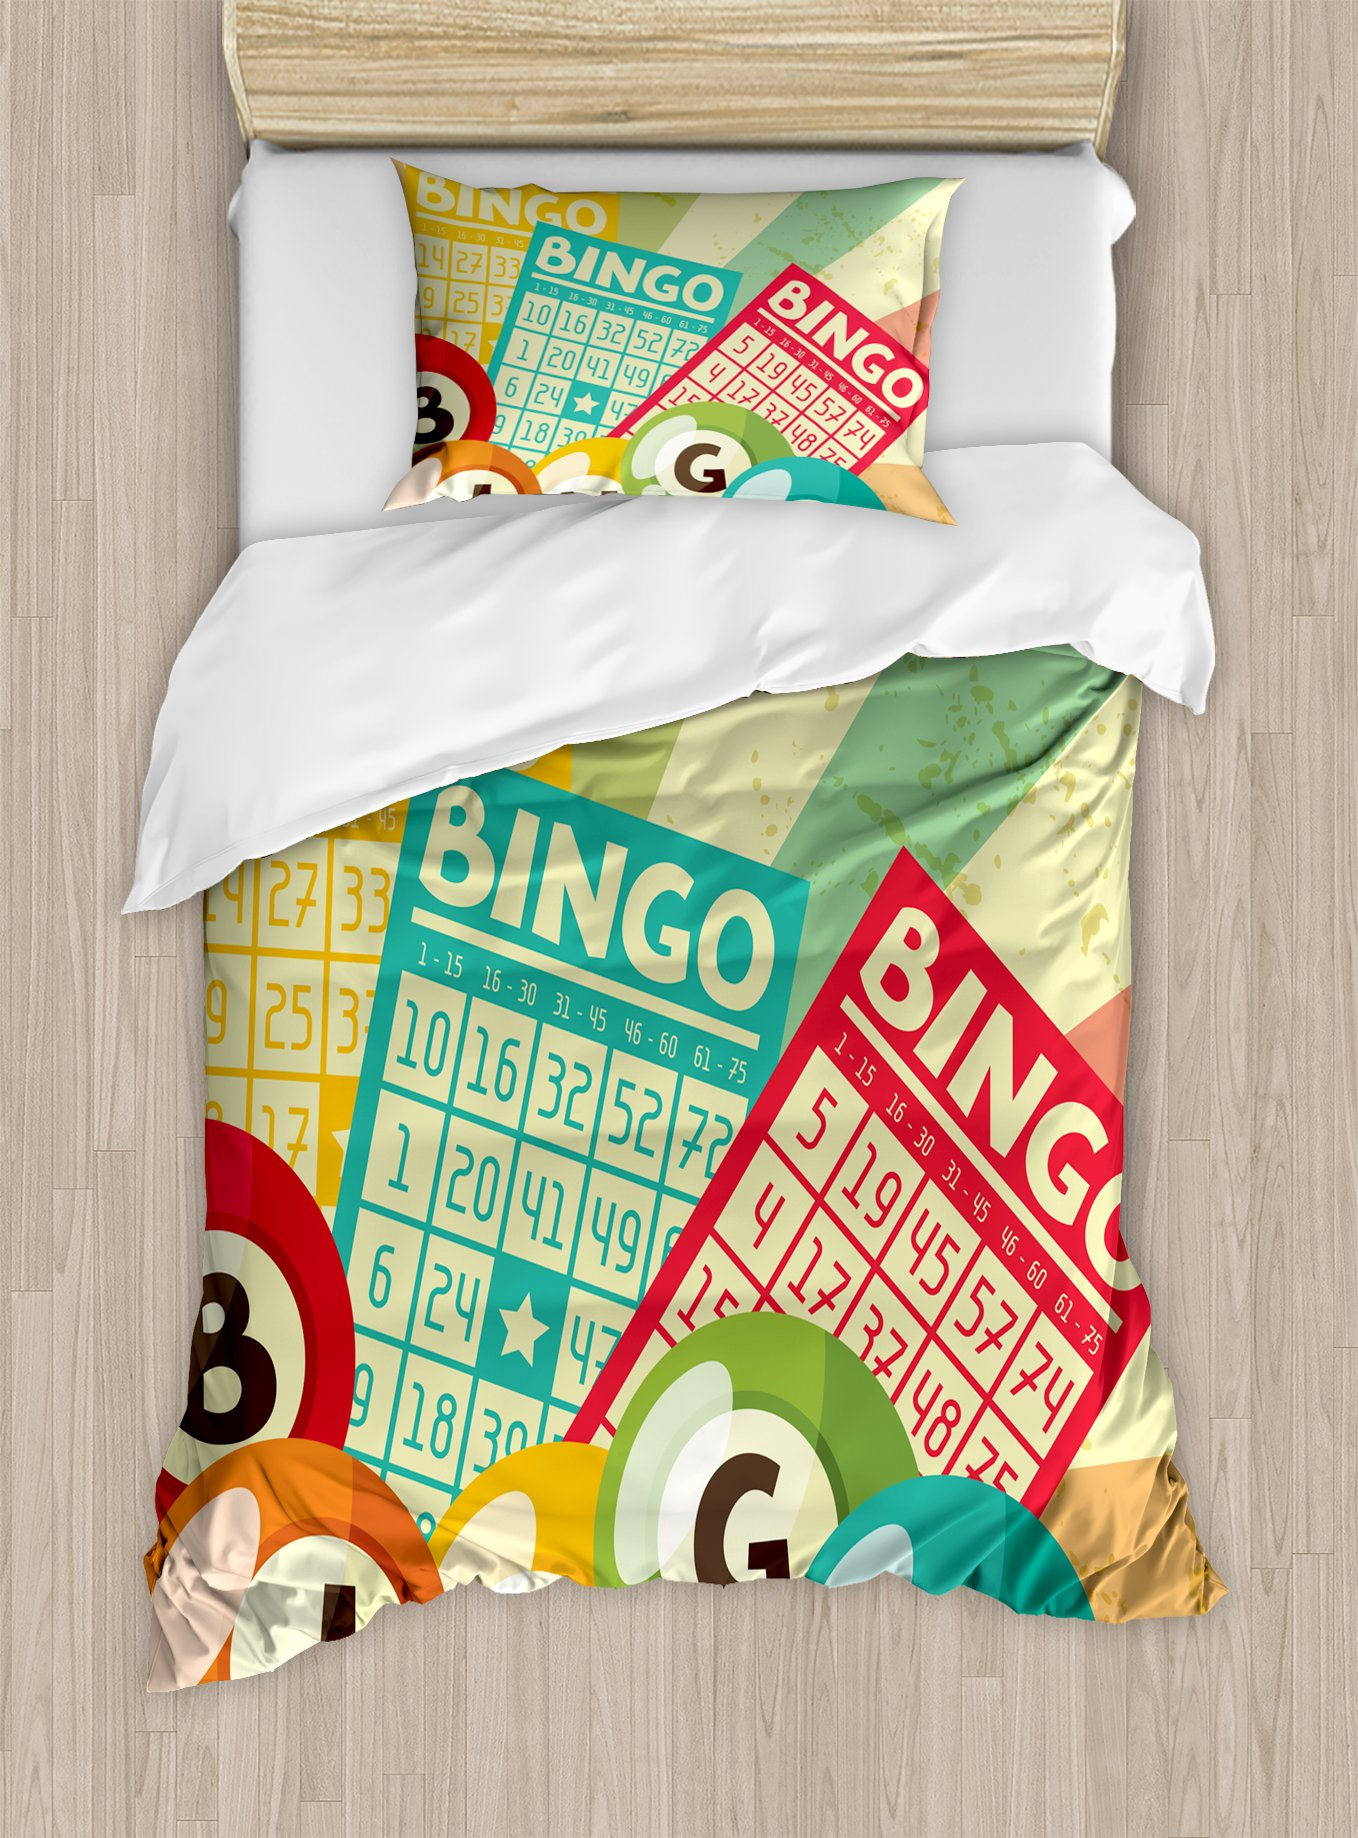 Ambesonne Vintage Duvet Cover Set Twin Size, Bingo Game with Ball and Cards Pop Art Stylized Lottery Hobby Celebration Theme, Decorative 2 Piece Bedding Set with 1 Pillow Sham, Multicolor by Ambesonne